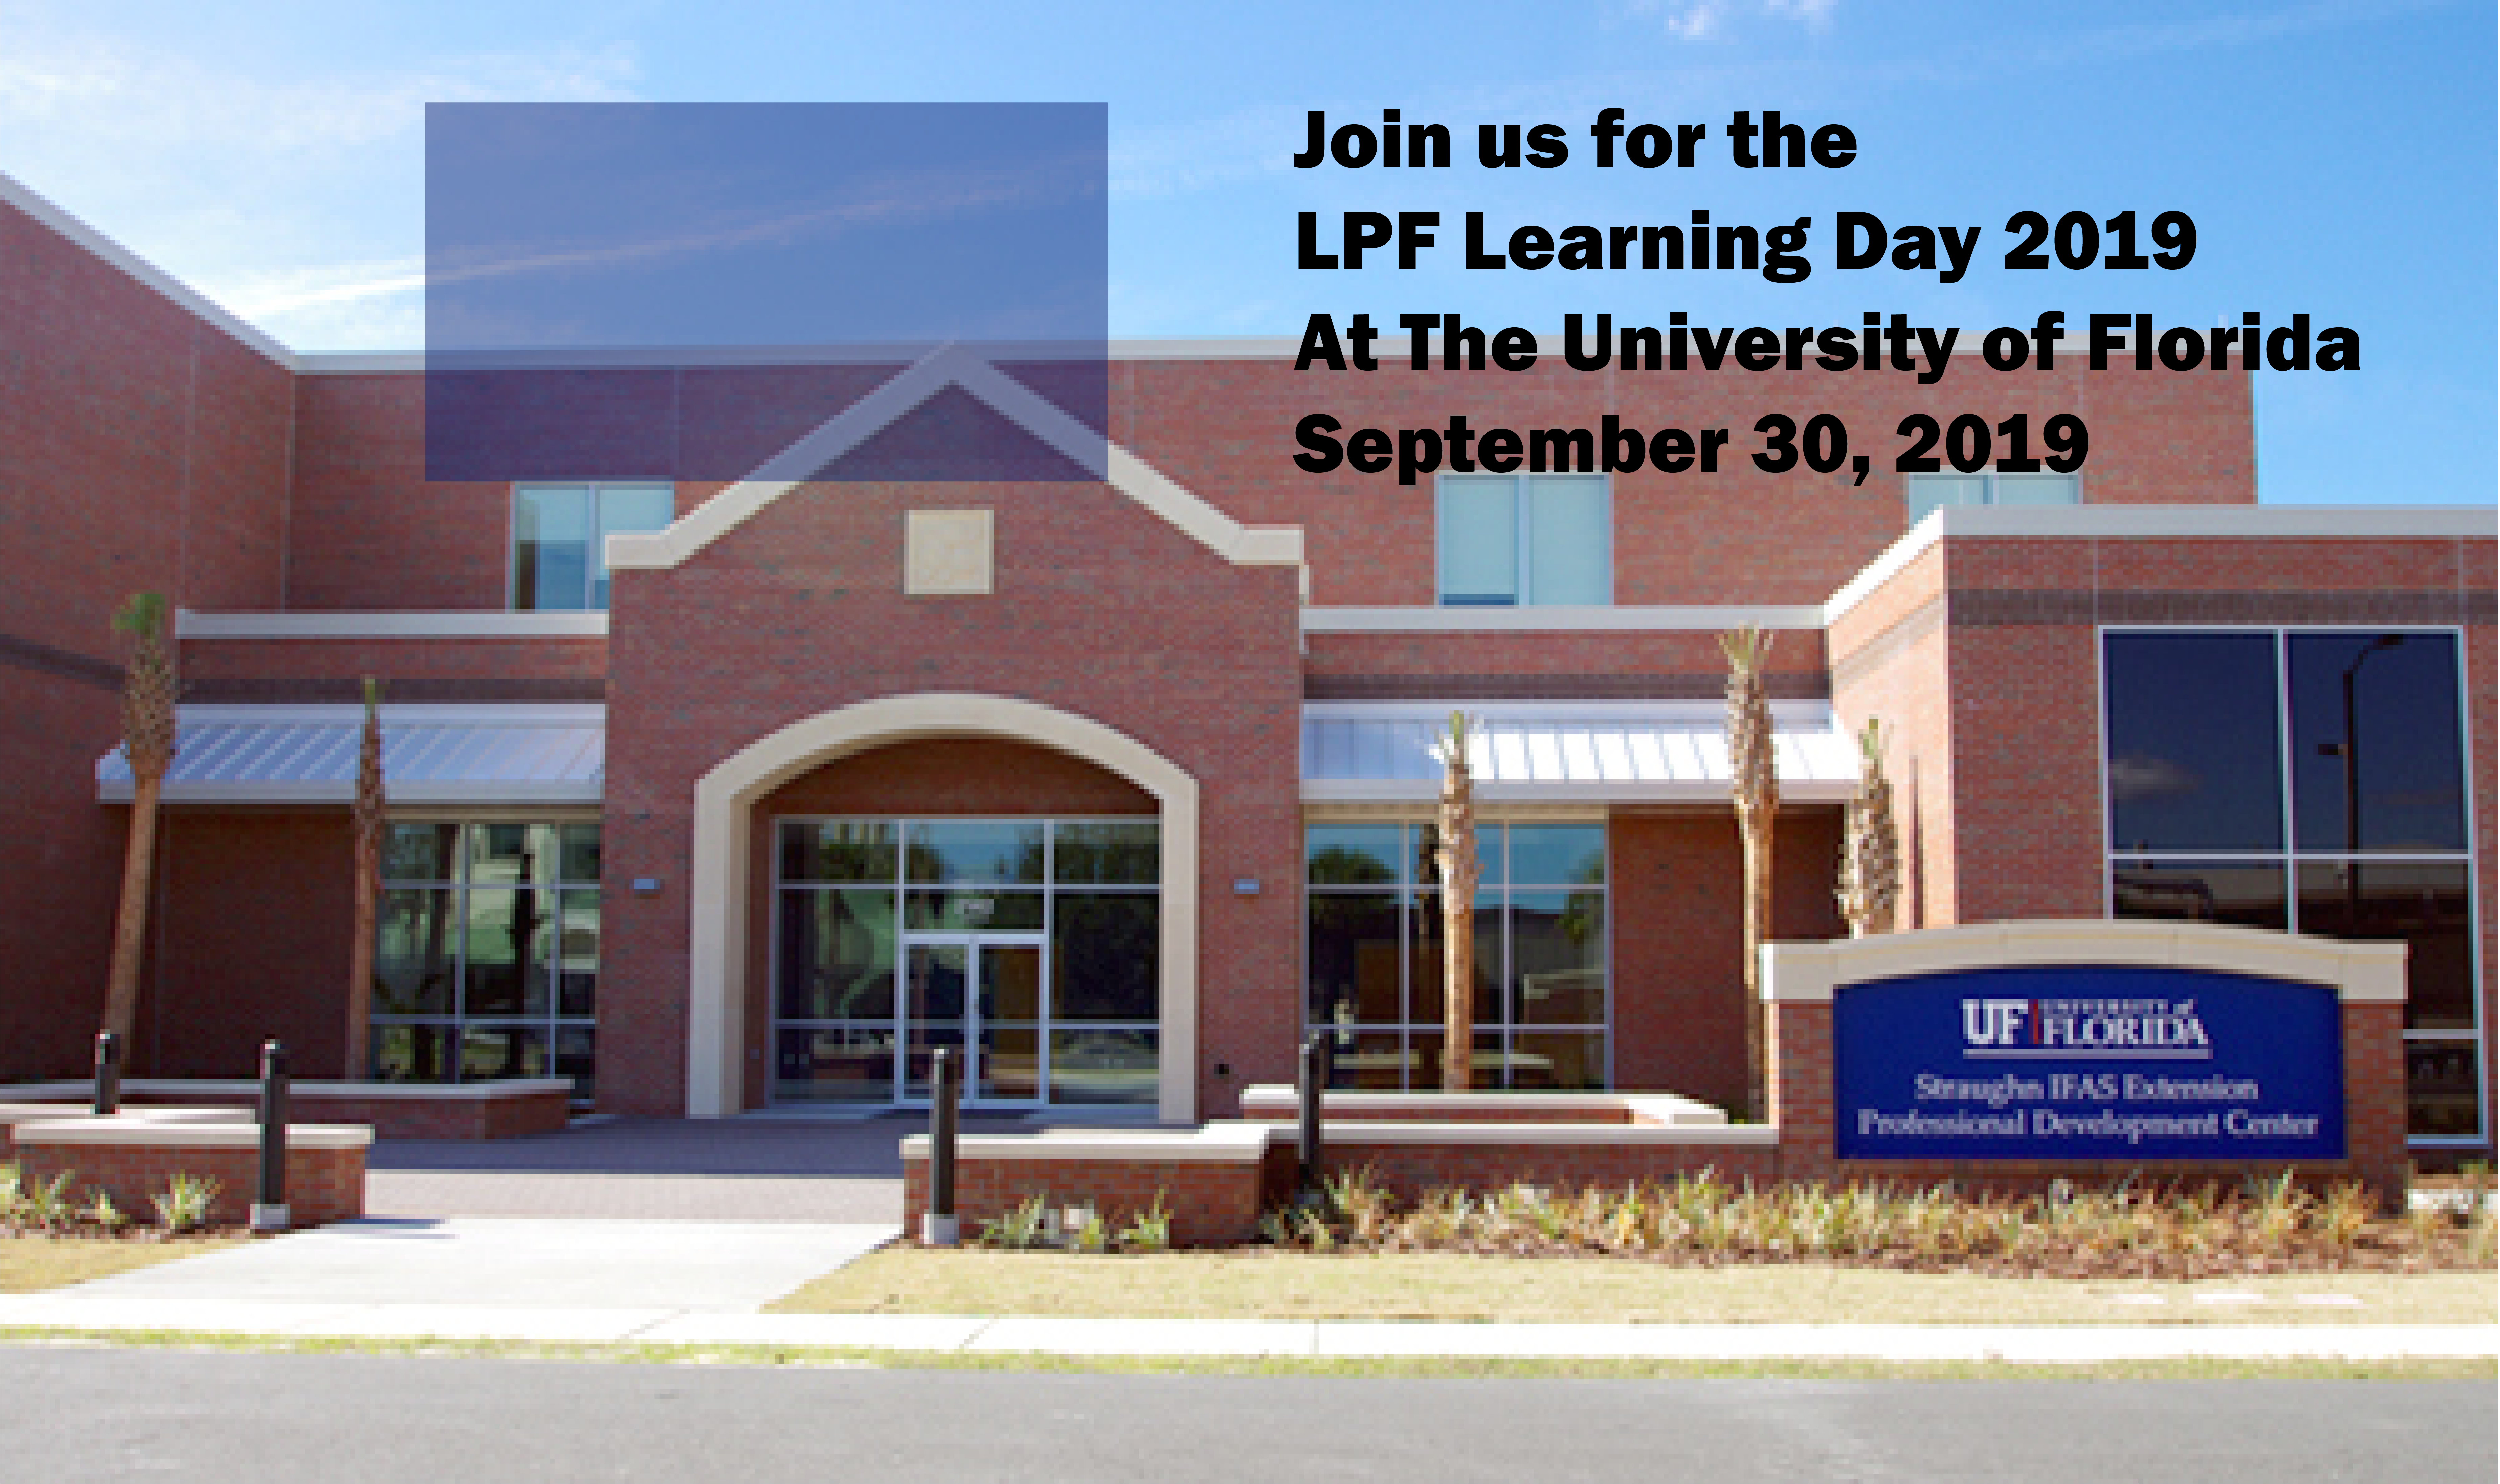 LPF Learning Day